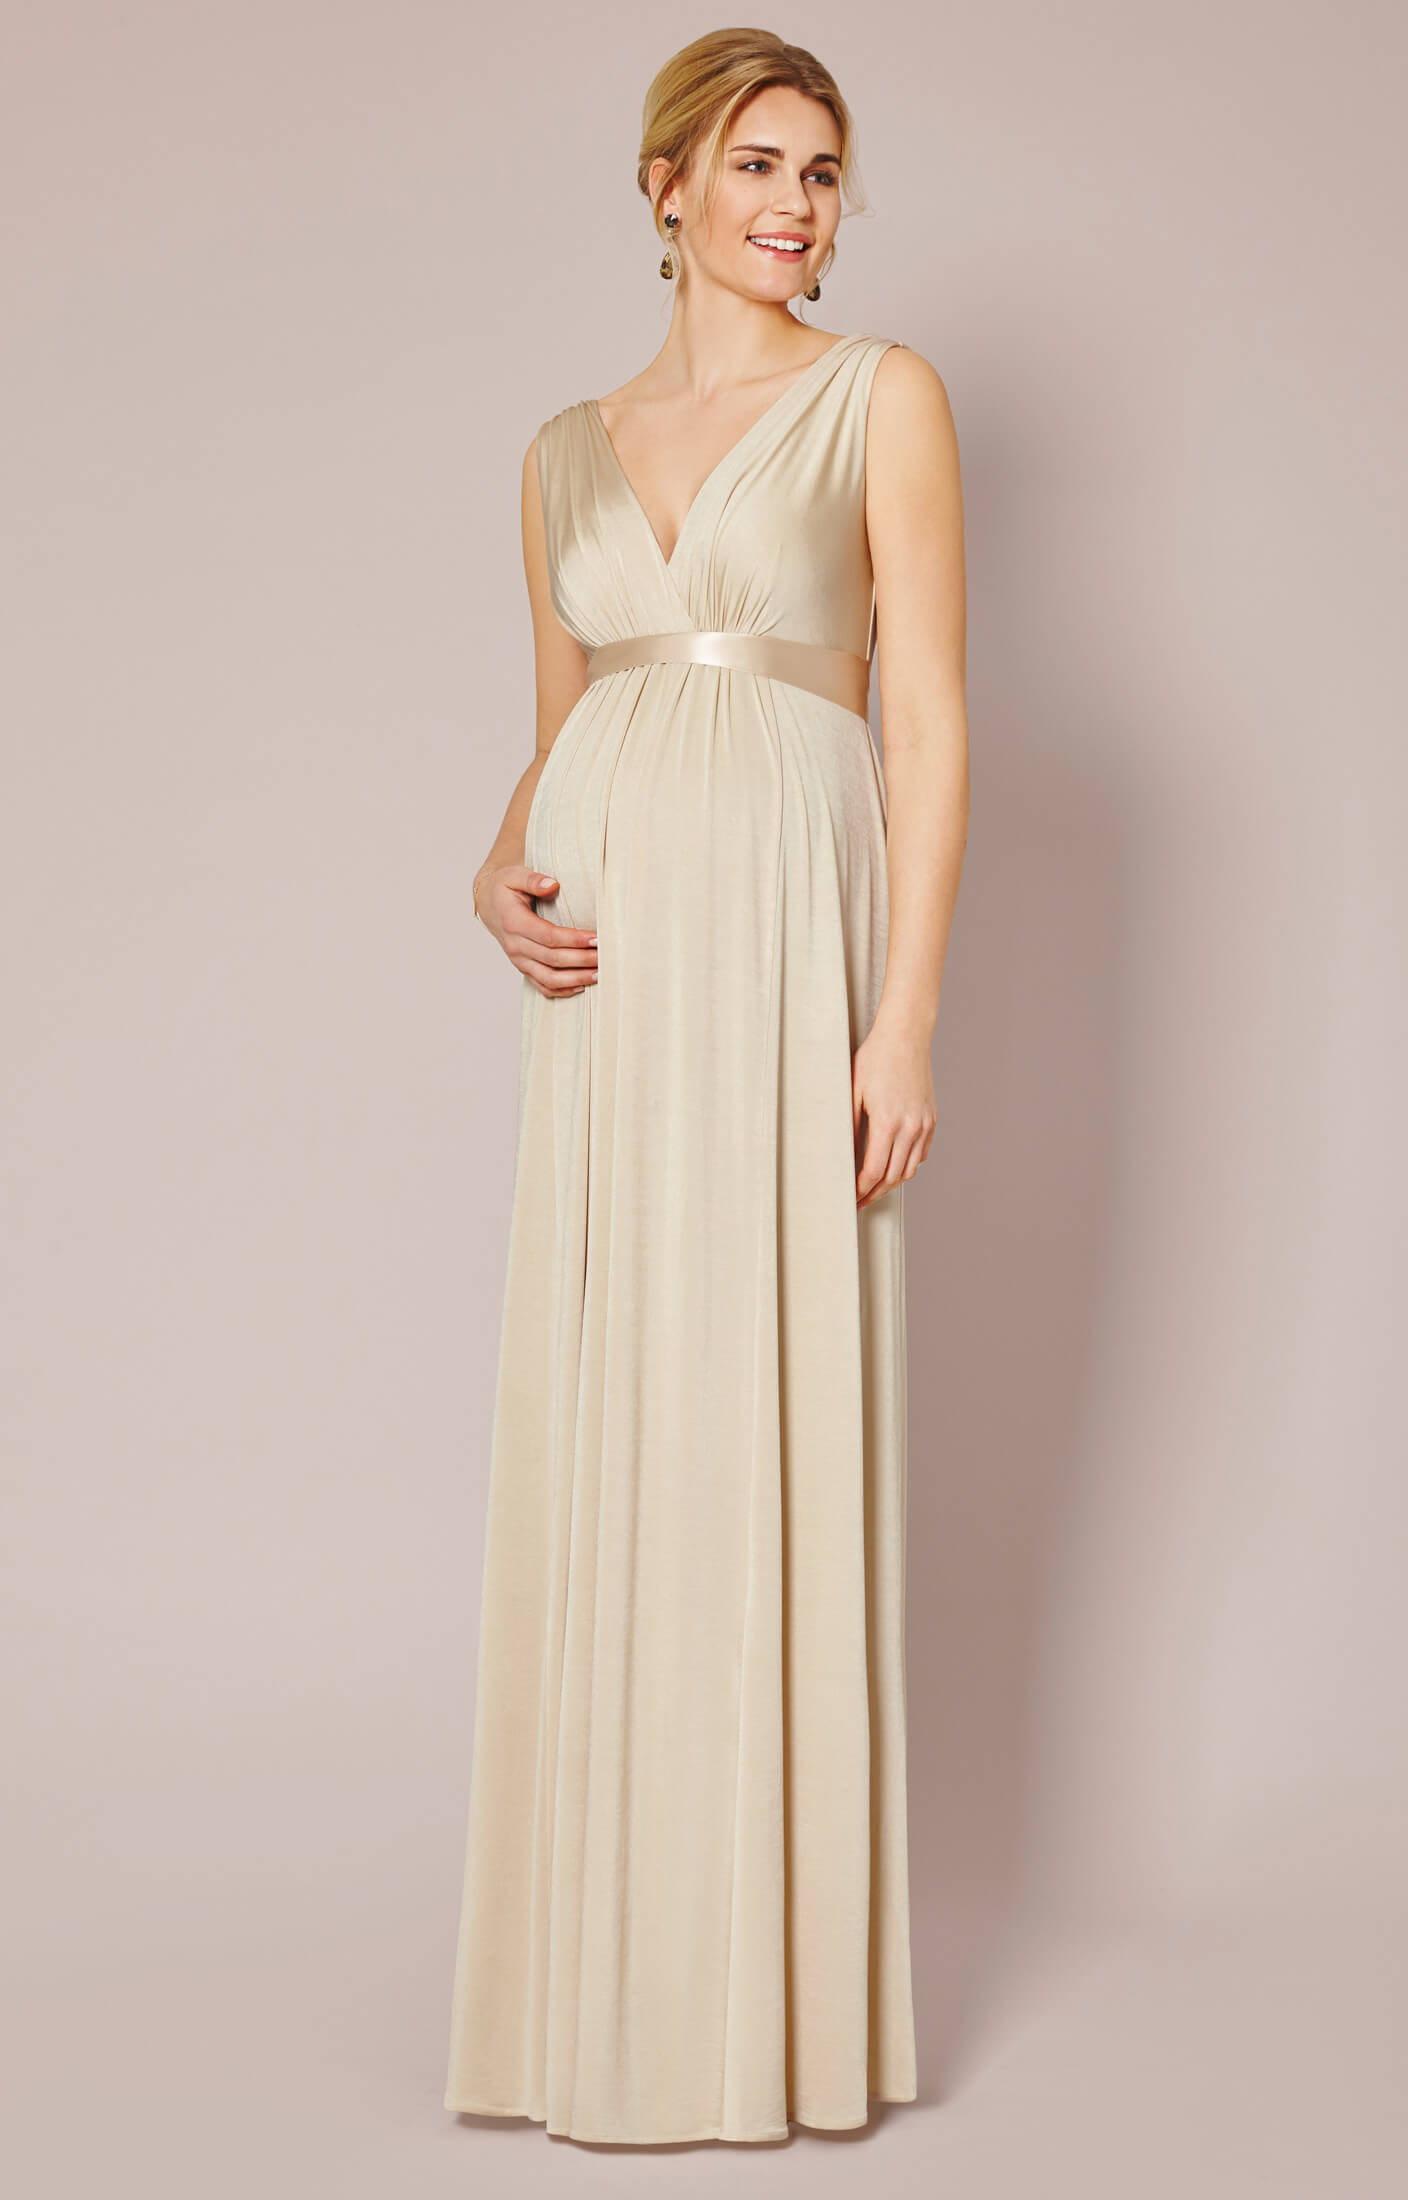 Anastasia maternity gown gold dust maternity wedding dresses anastasia maternity gown gold dust maternity wedding dresses evening wear and party clothes by tiffany rose ombrellifo Gallery